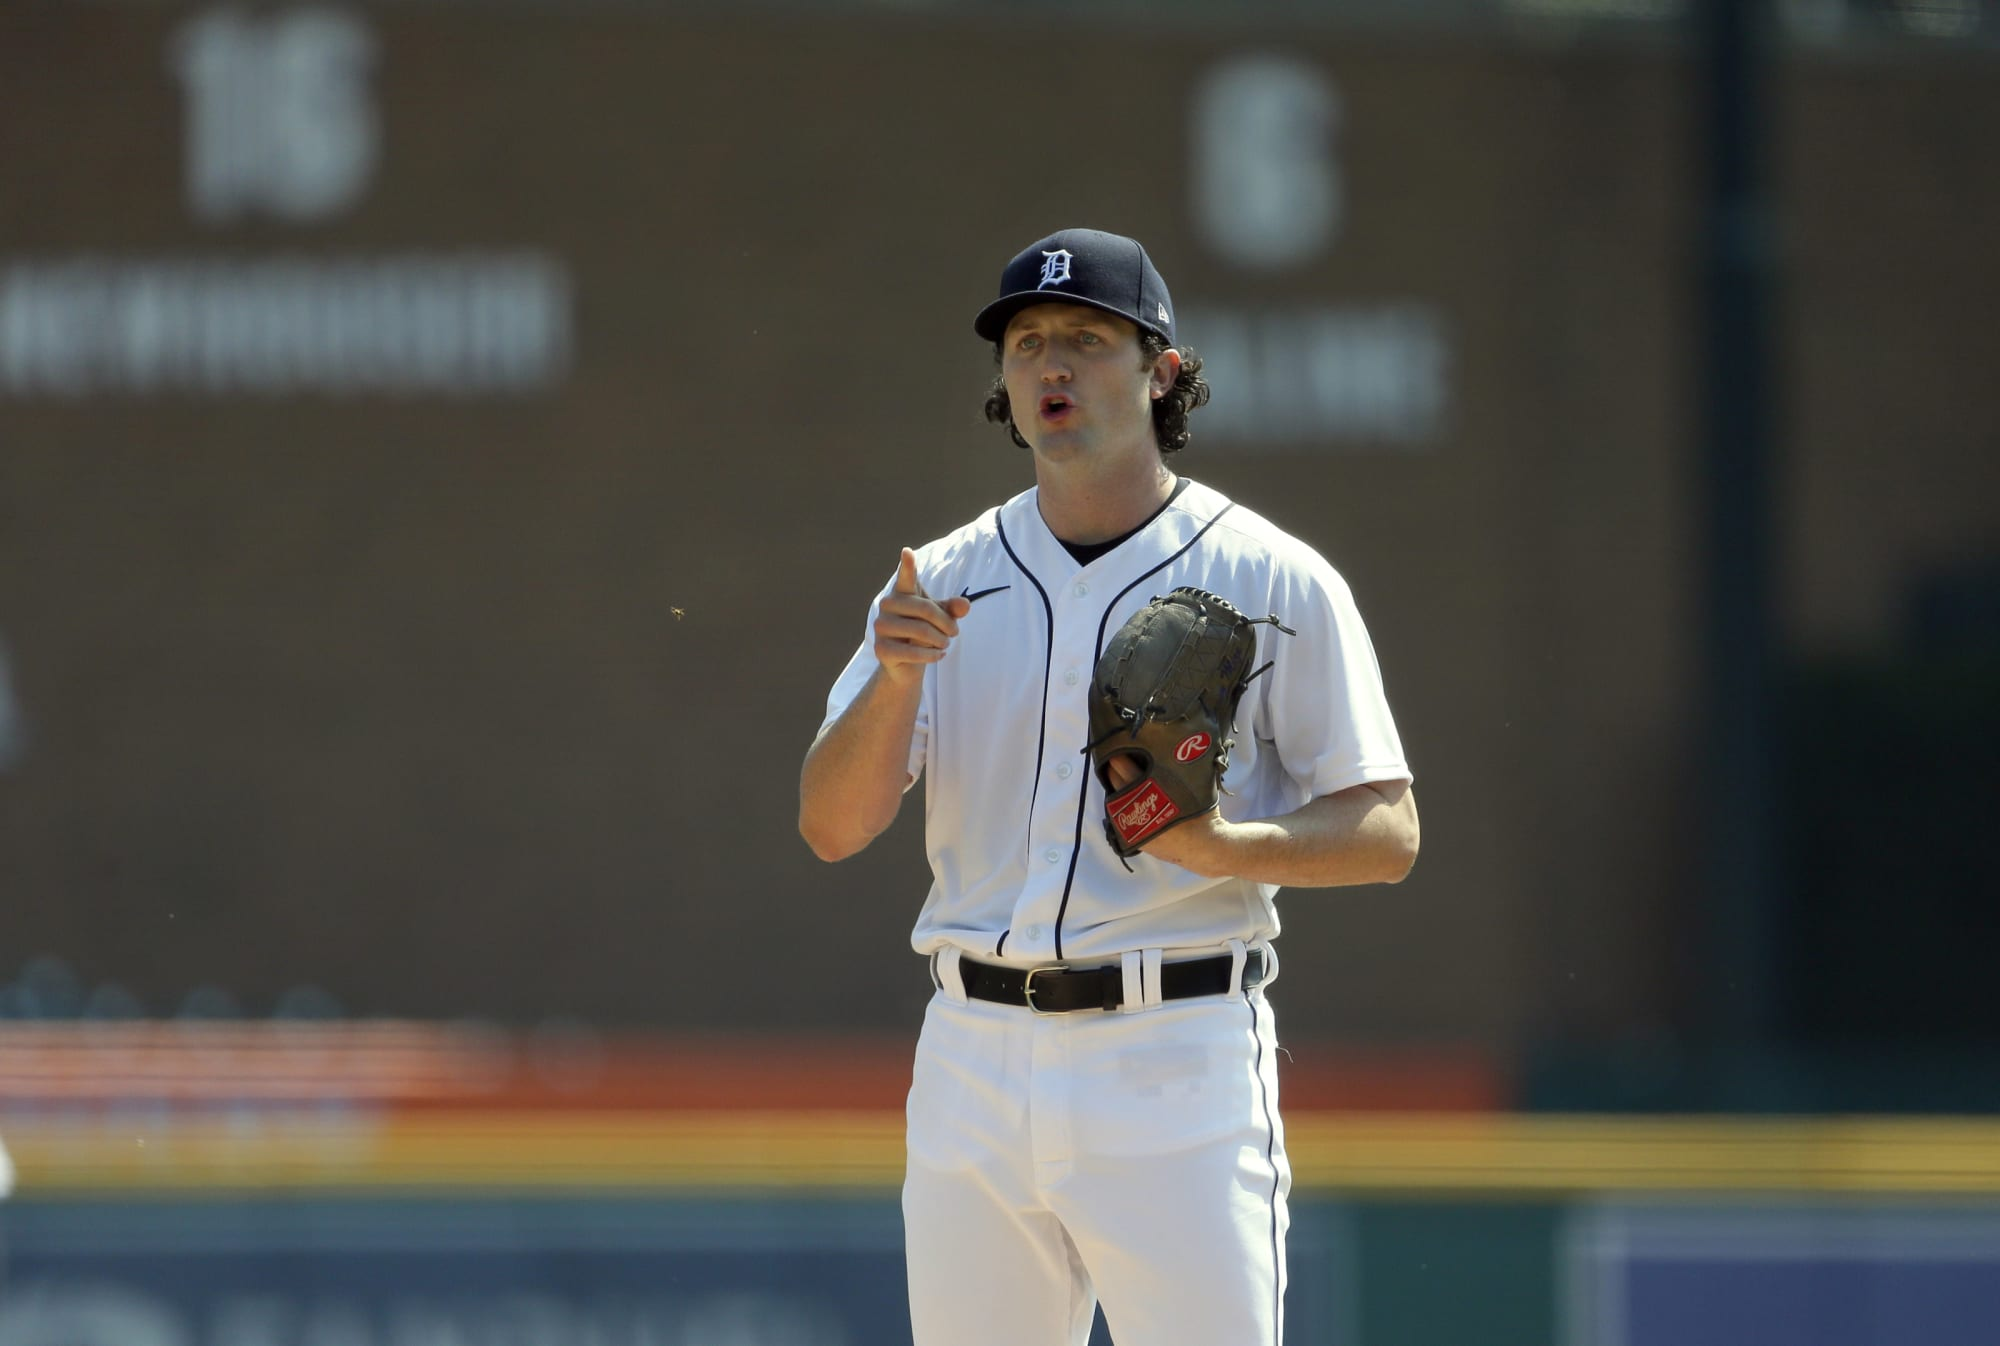 Tigers pitcher Casey Mize calls out umpire for making him change his glove